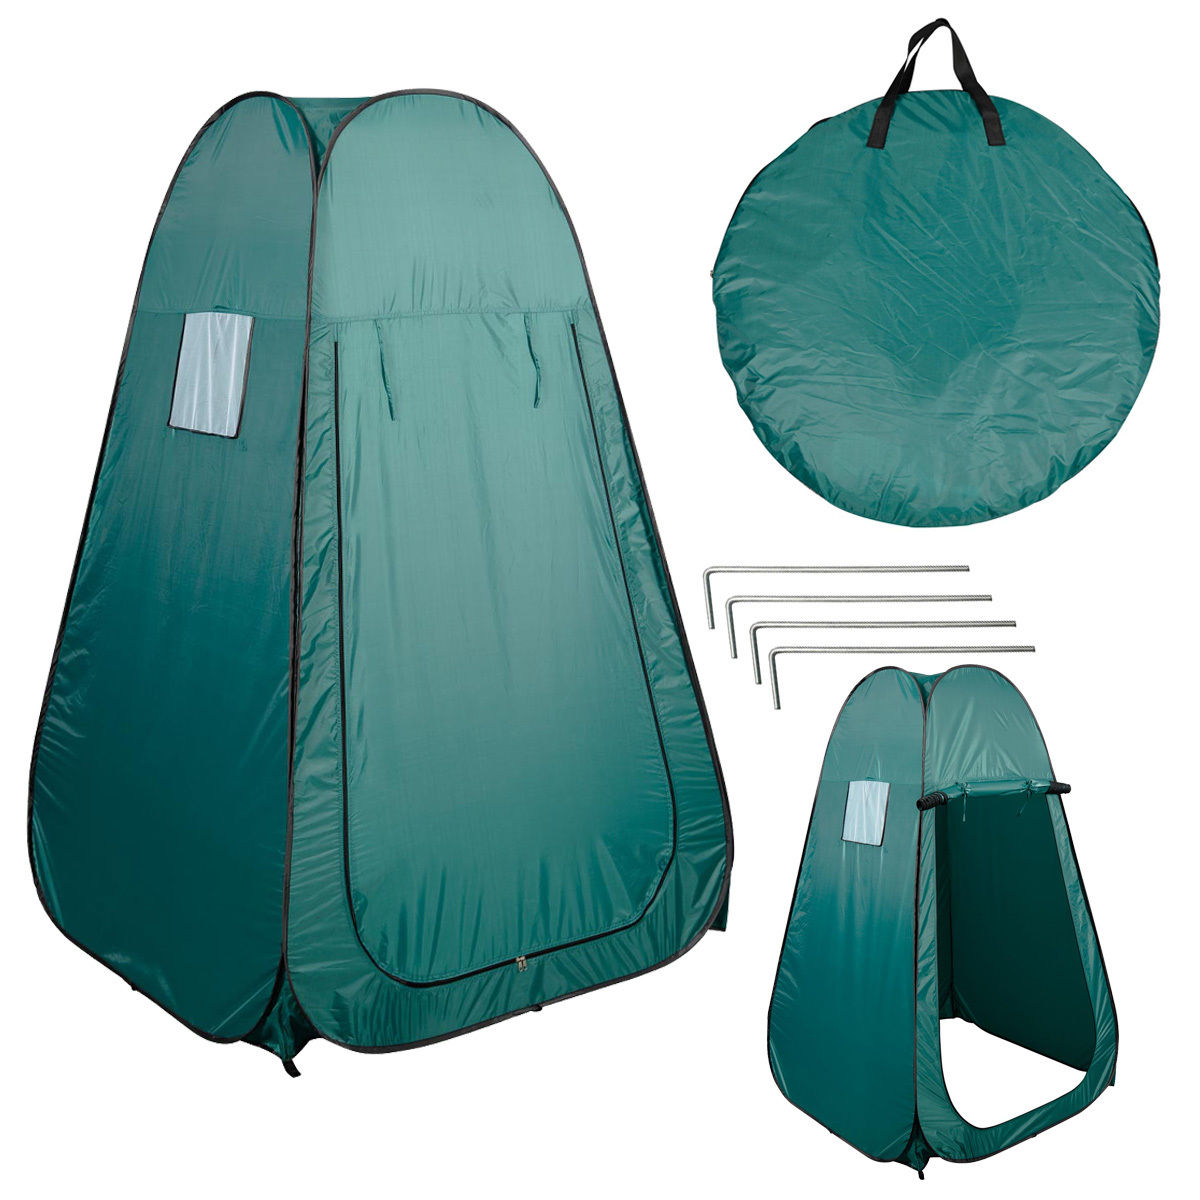 Costway Portable Pop UP Fishing u0026 Bathing Toilet Changing Tent C&ing Room Green  sc 1 st  Walmart & Costway Portable Pop UP Fishing u0026 Bathing Toilet Changing Tent ...